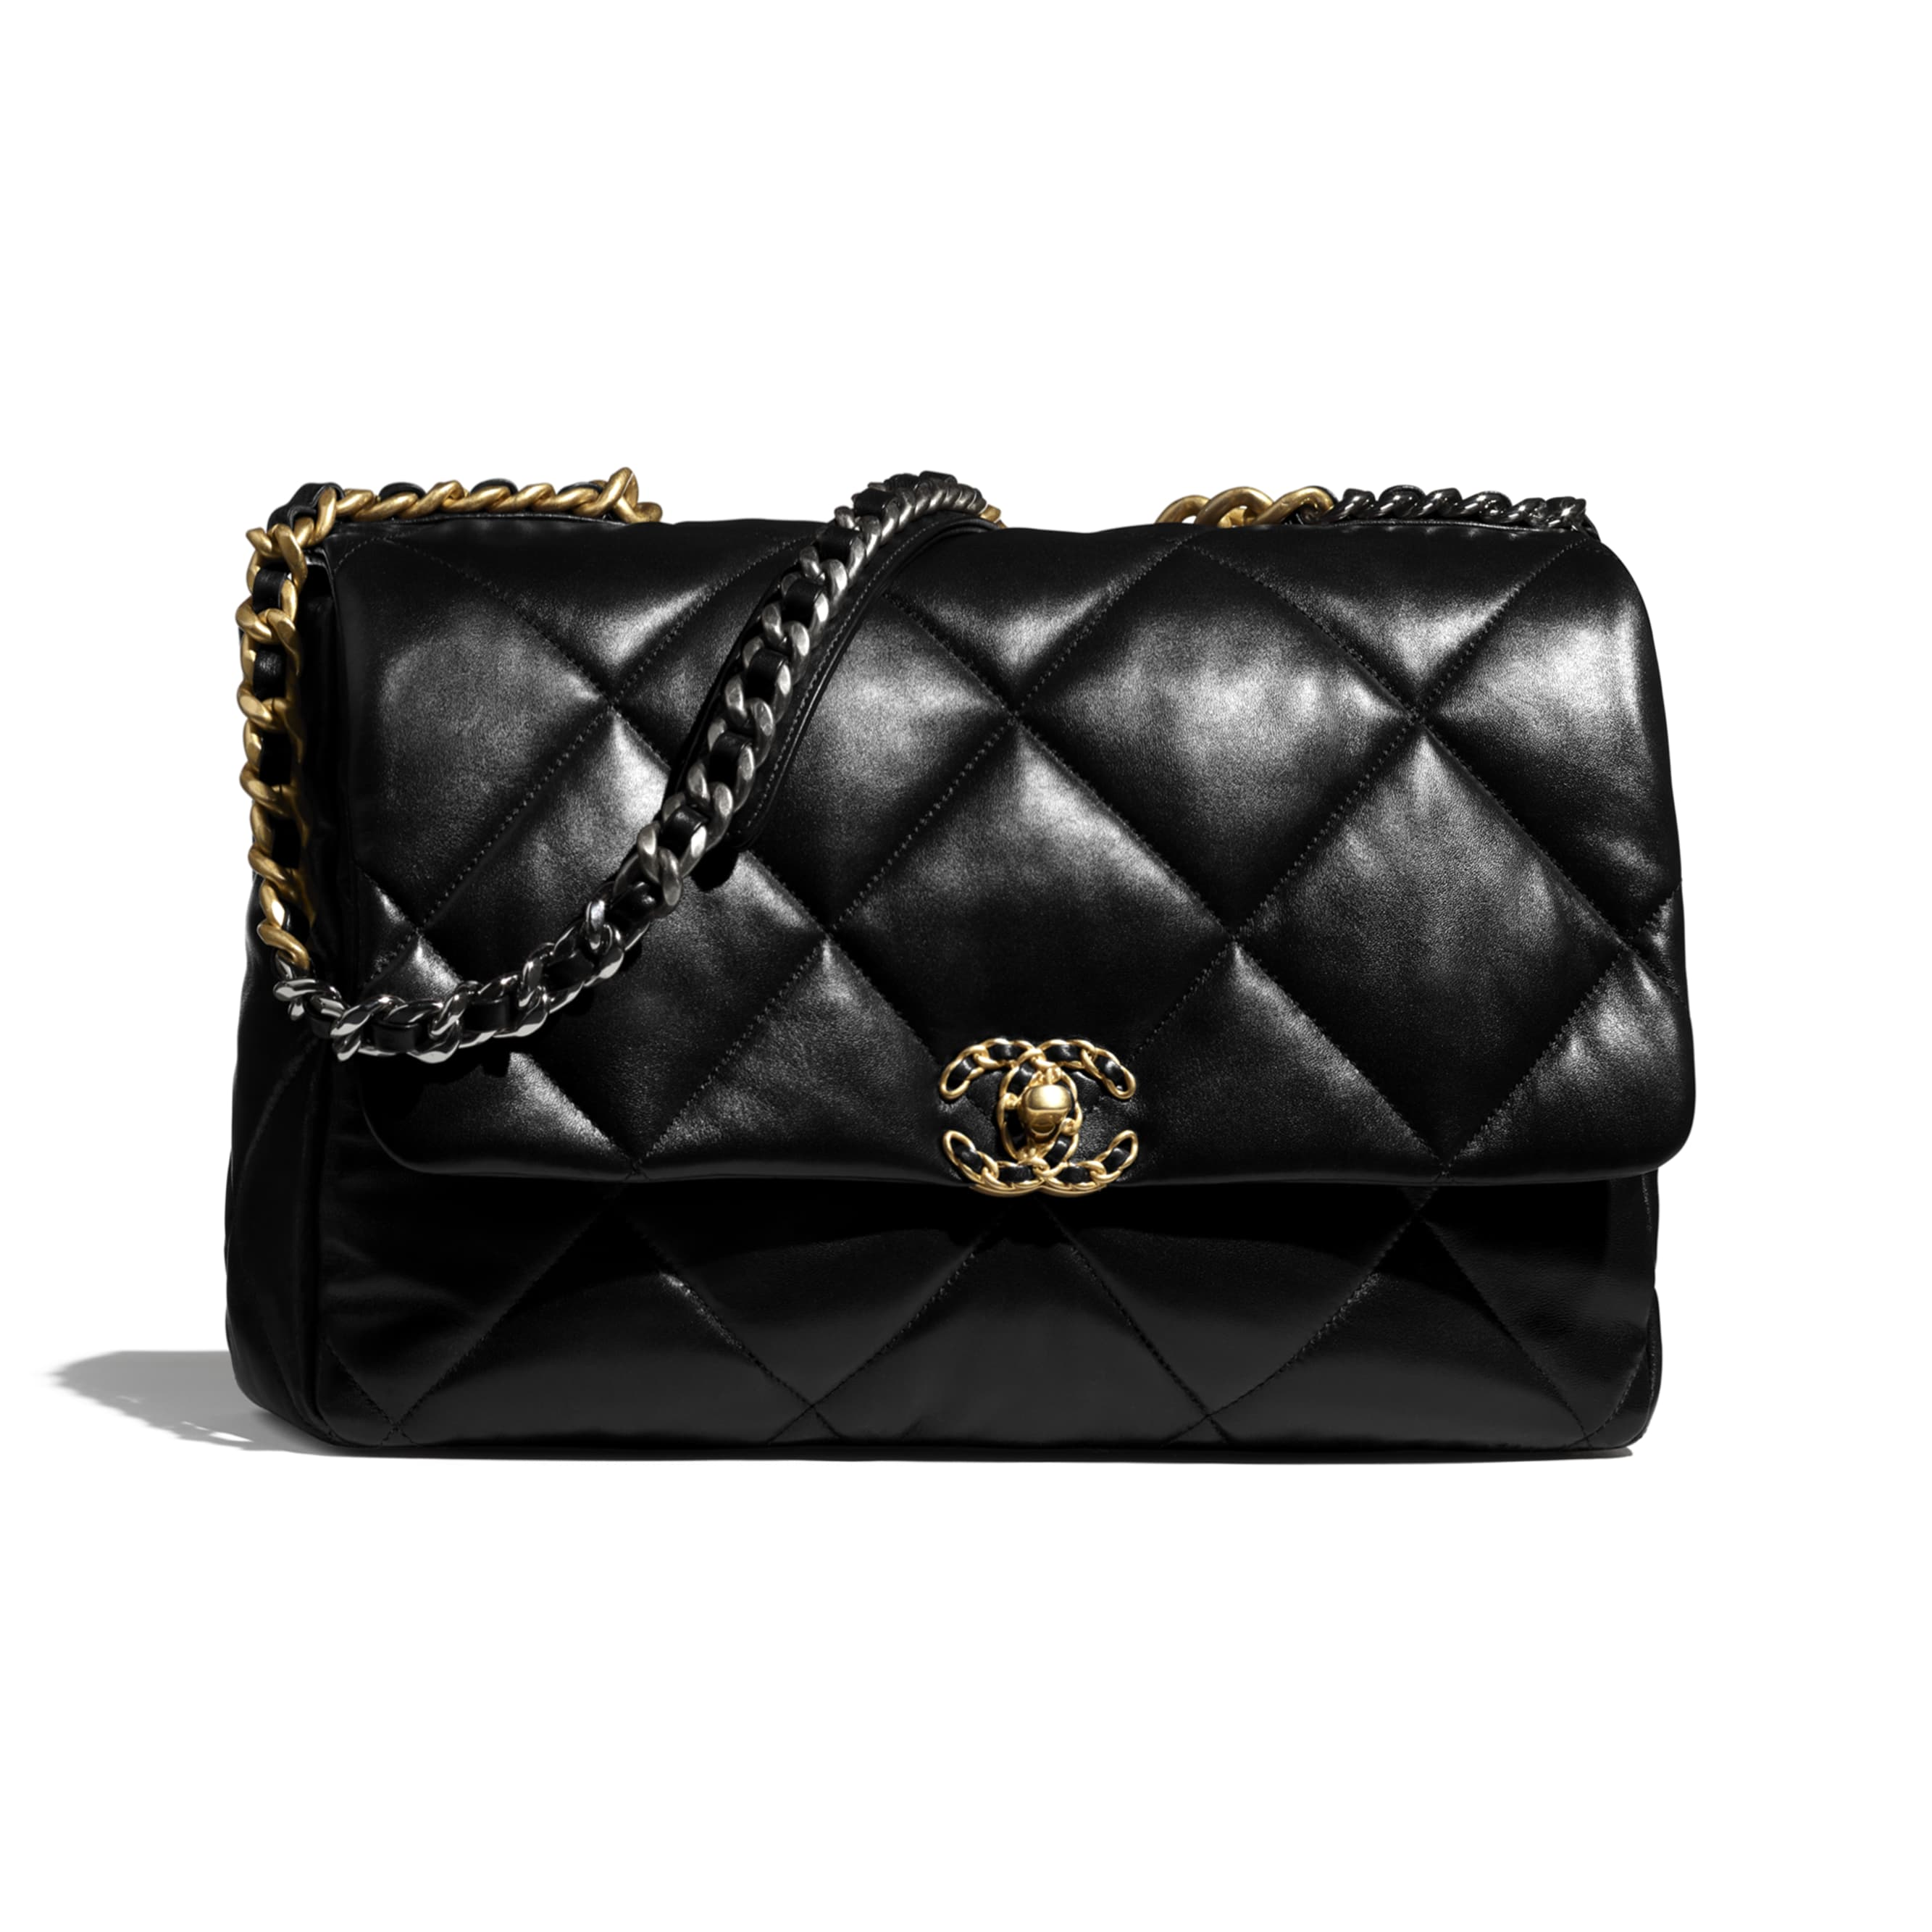 CHANEL 19 Maxi Handbag - Black - Lambskin, Gold-Tone, Silver-Tone & Ruthenium-Finish Metal - CHANEL - Default view - see standard sized version